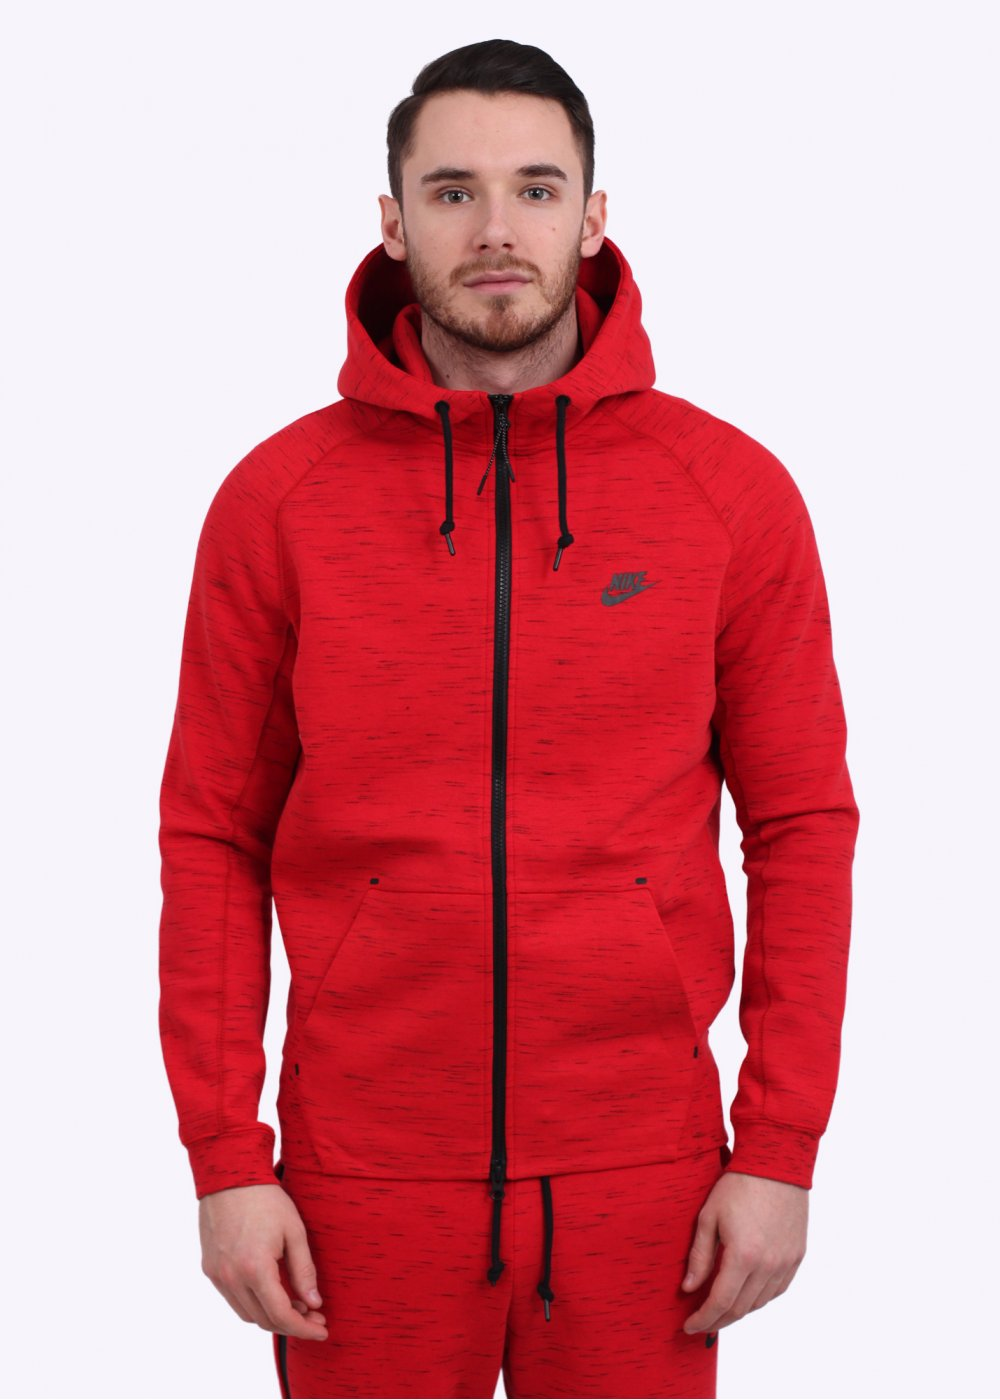 Fleece Hoodie AW77 Tech Nike Apparel Red QroxeBCdW